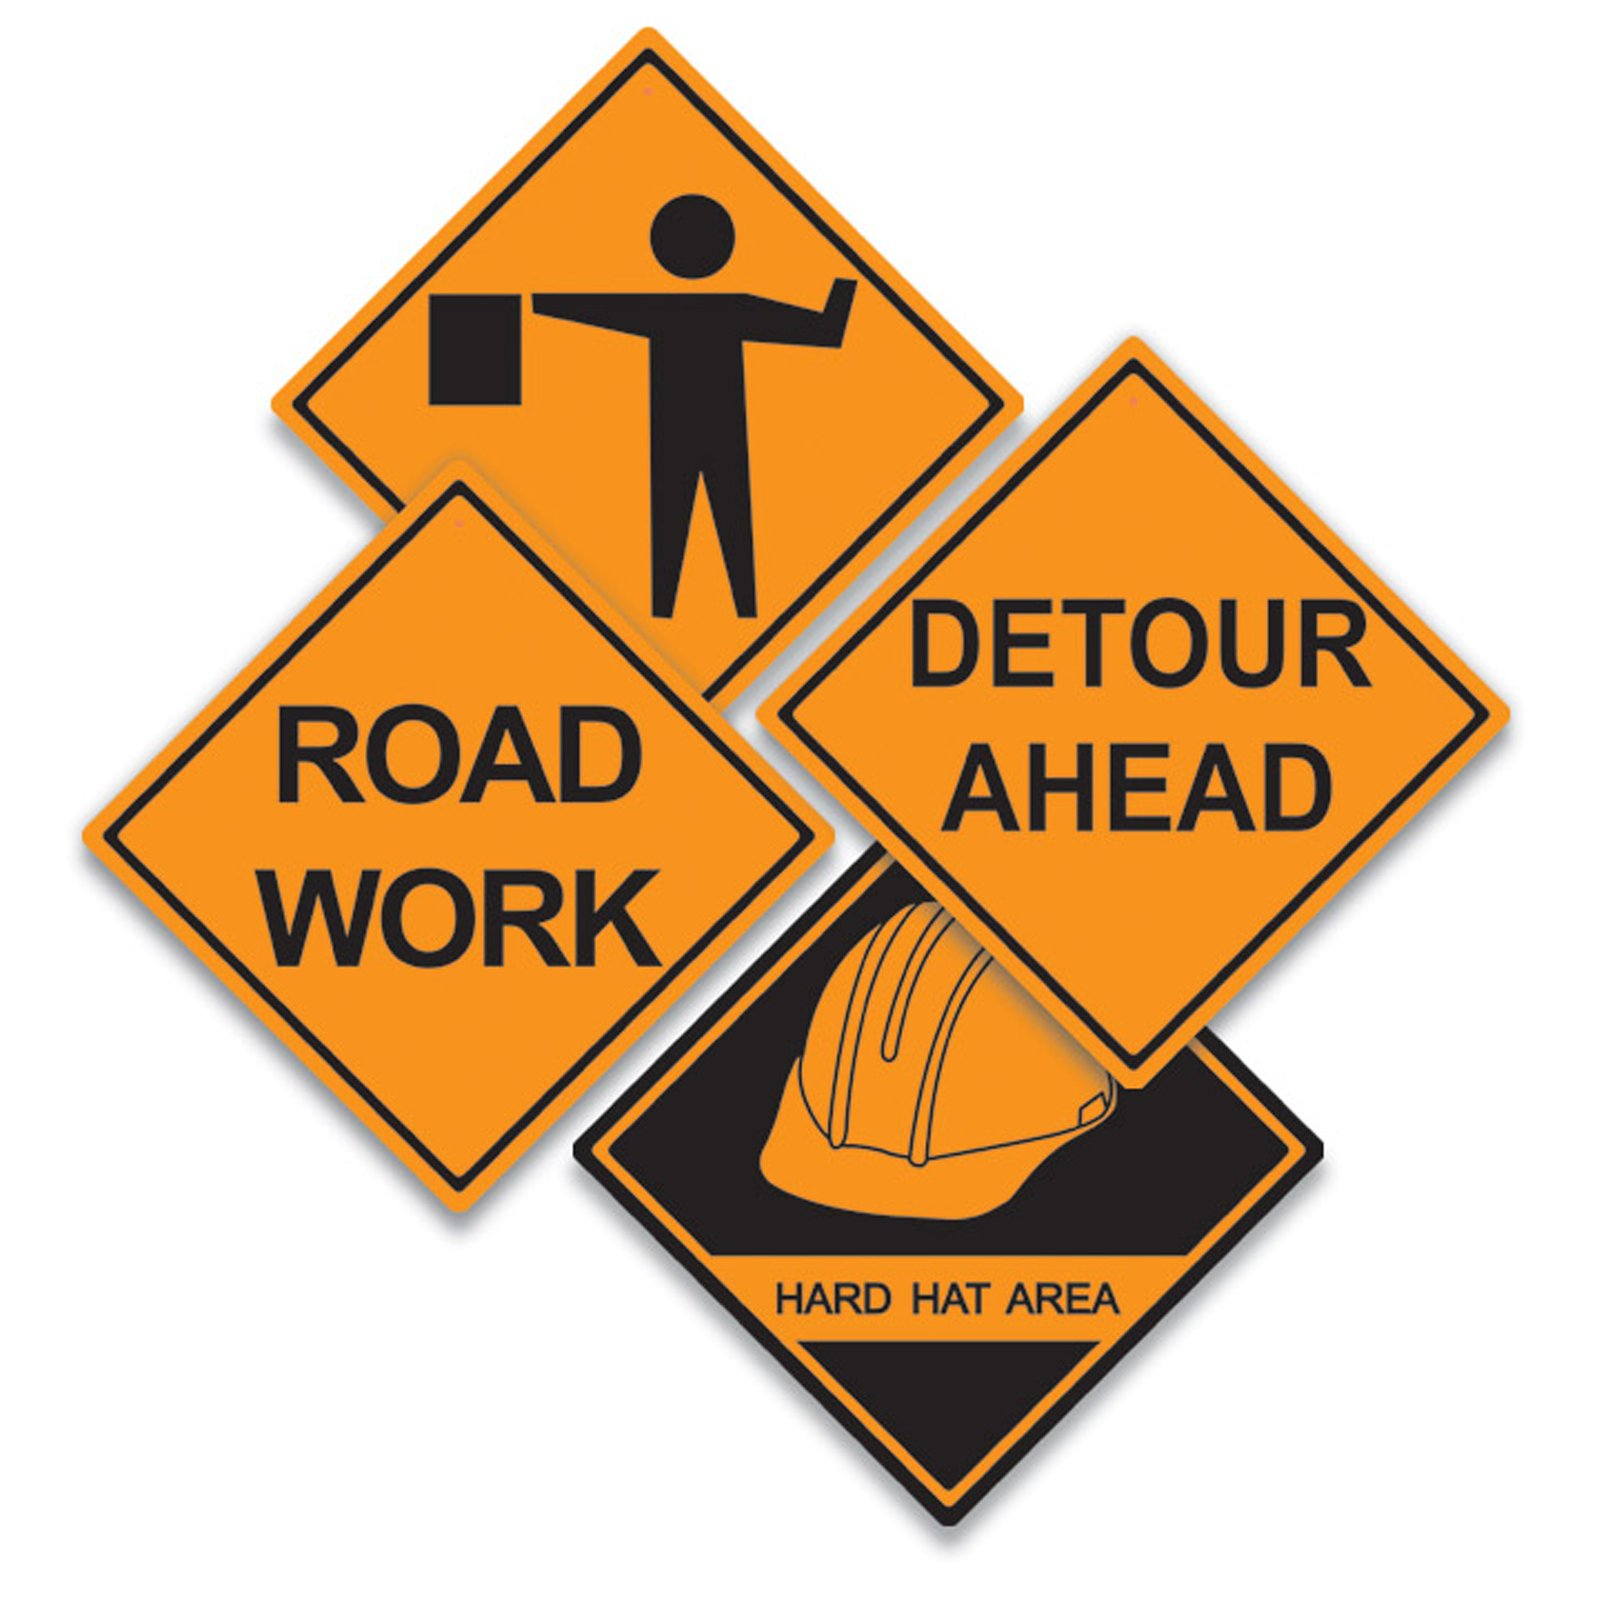 May 2019 GDOT Road Project & Detours Begin Along SR 25/Main Street